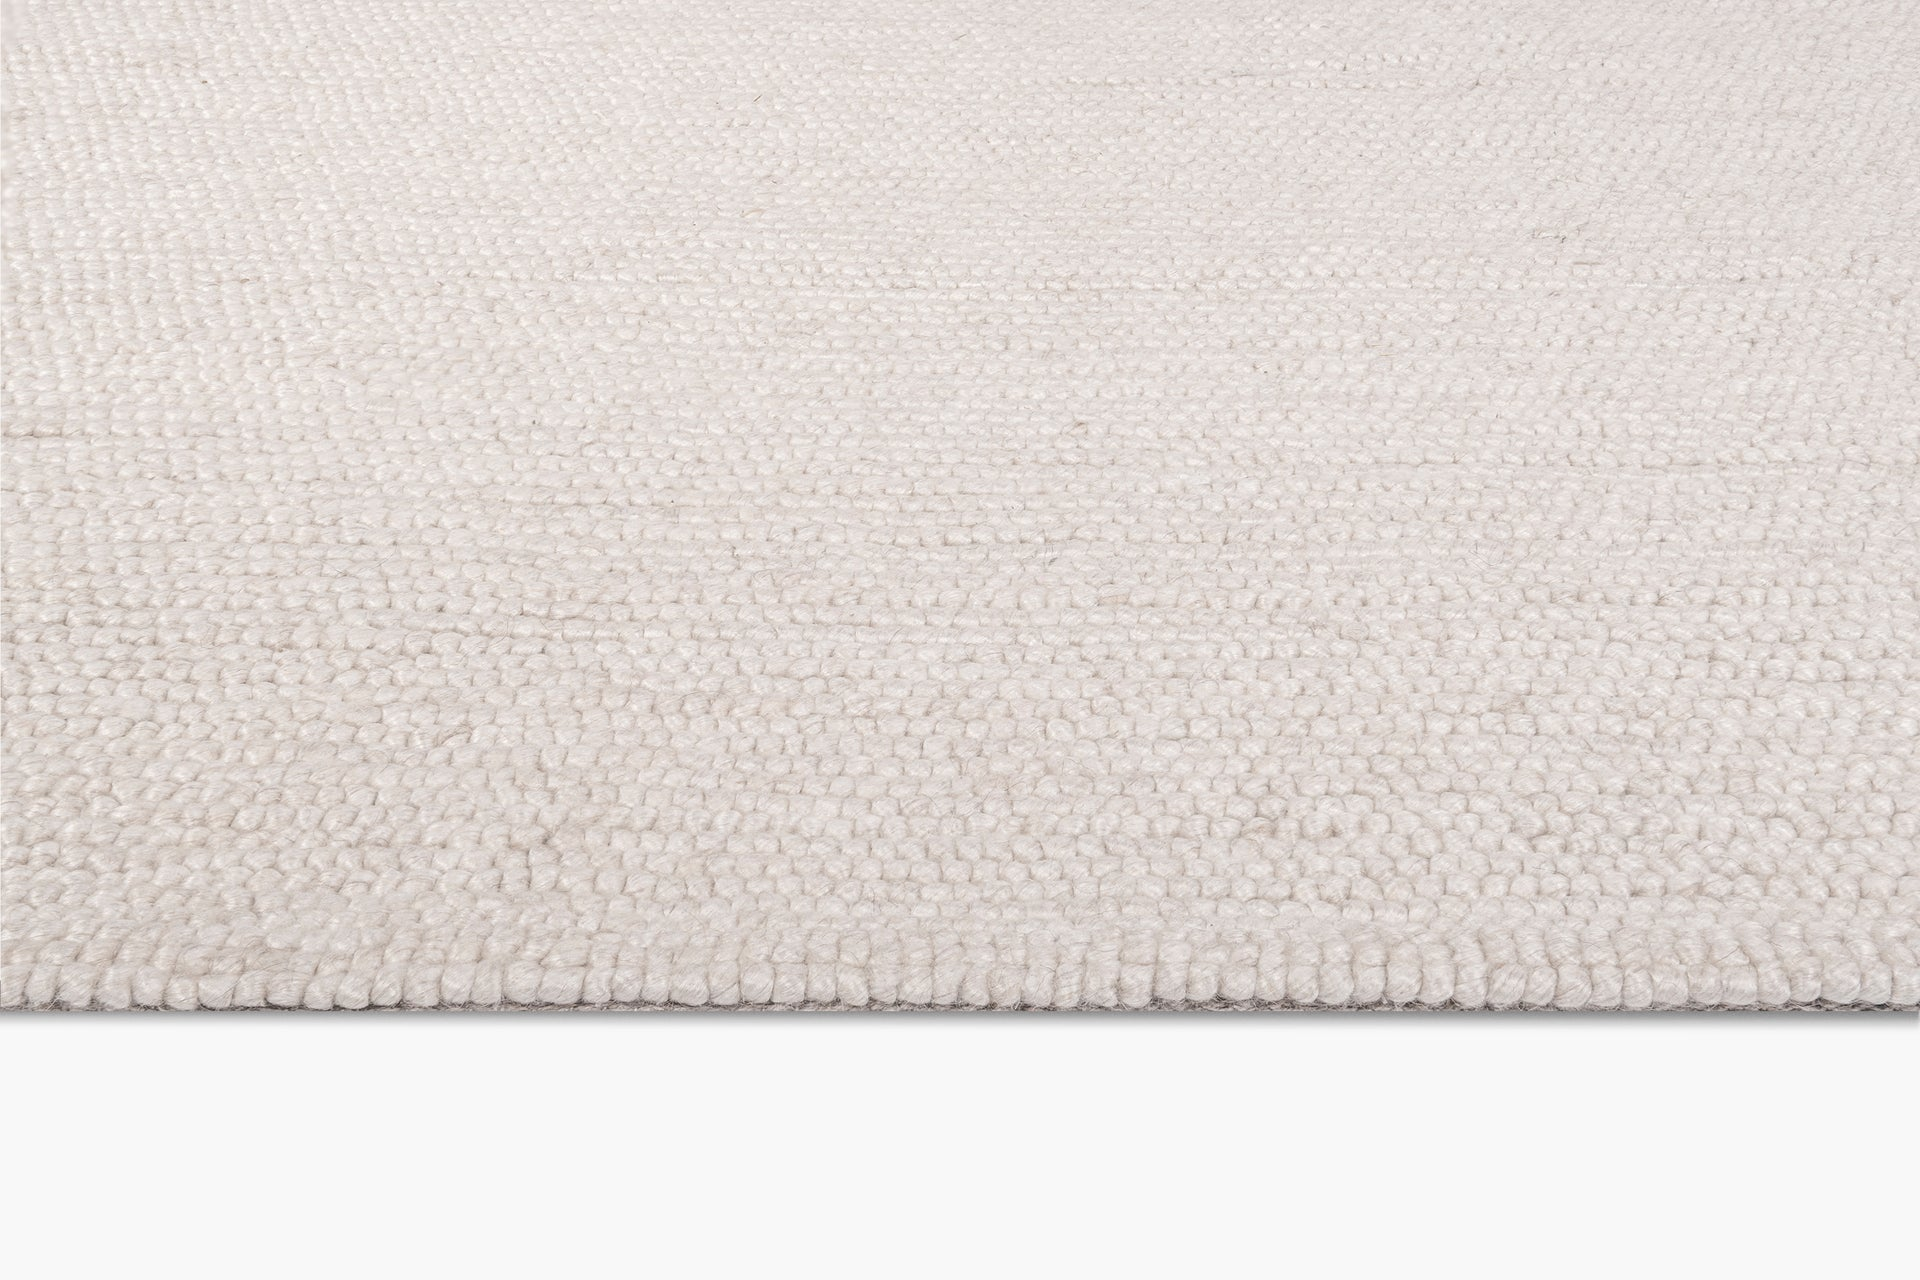 Shaded Loop Rug – Cream